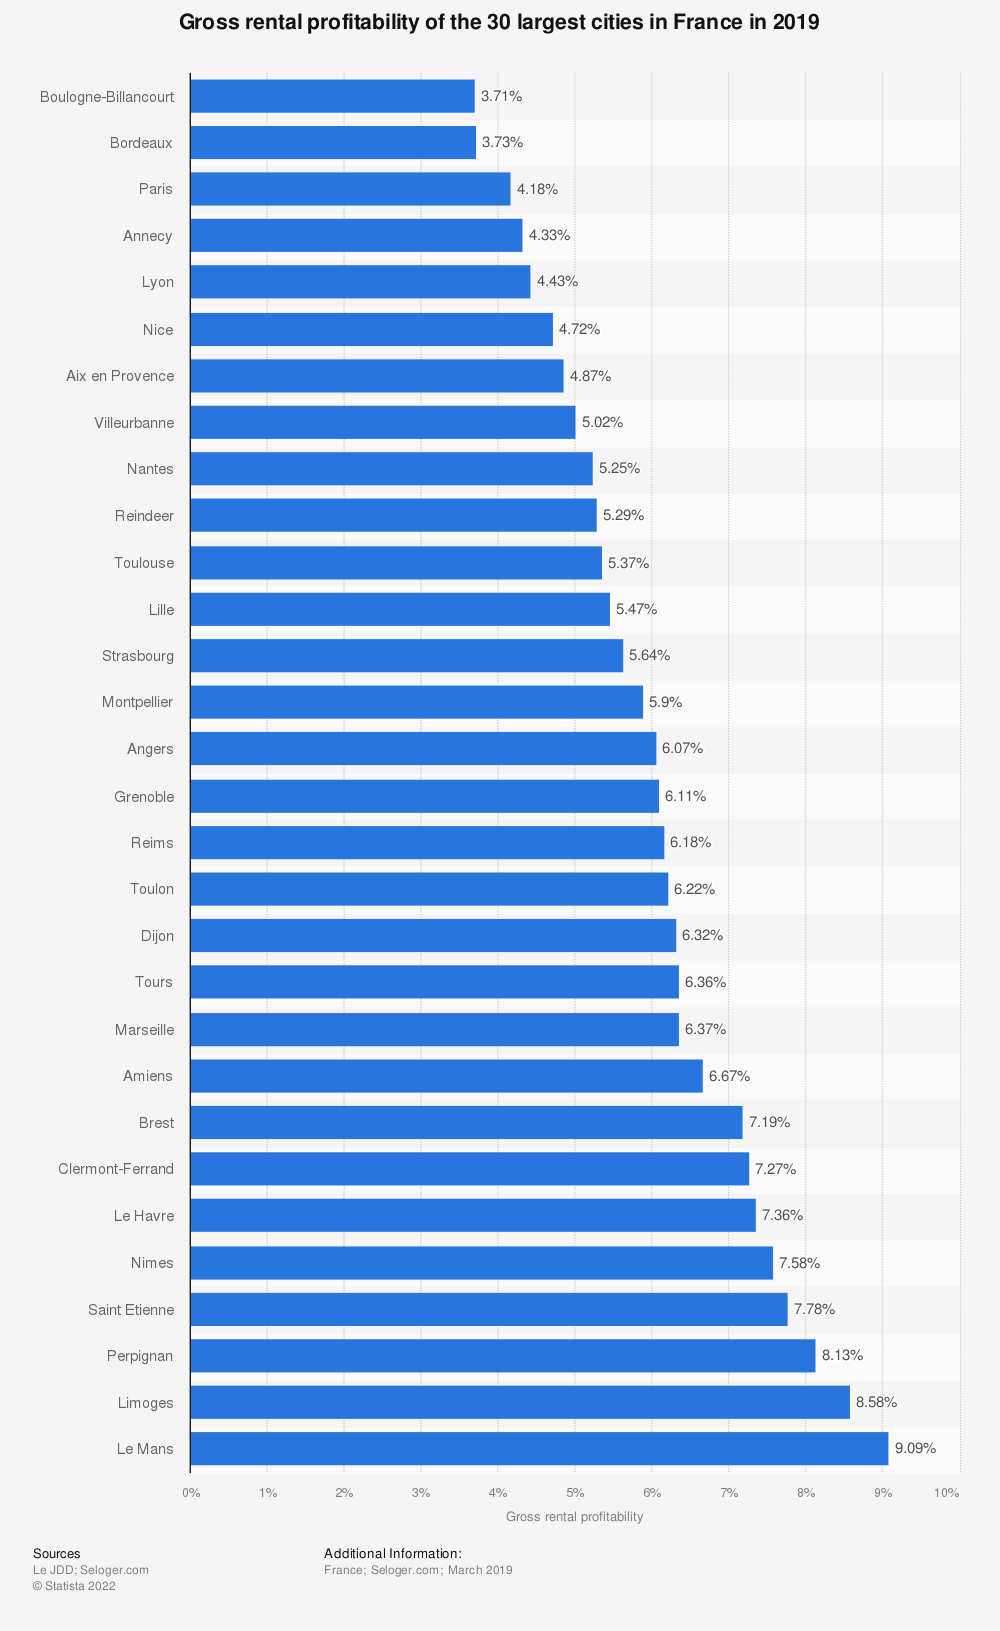 Statistic: Gross rental profitability of the 30 largest cities in France in 2019 | Statista